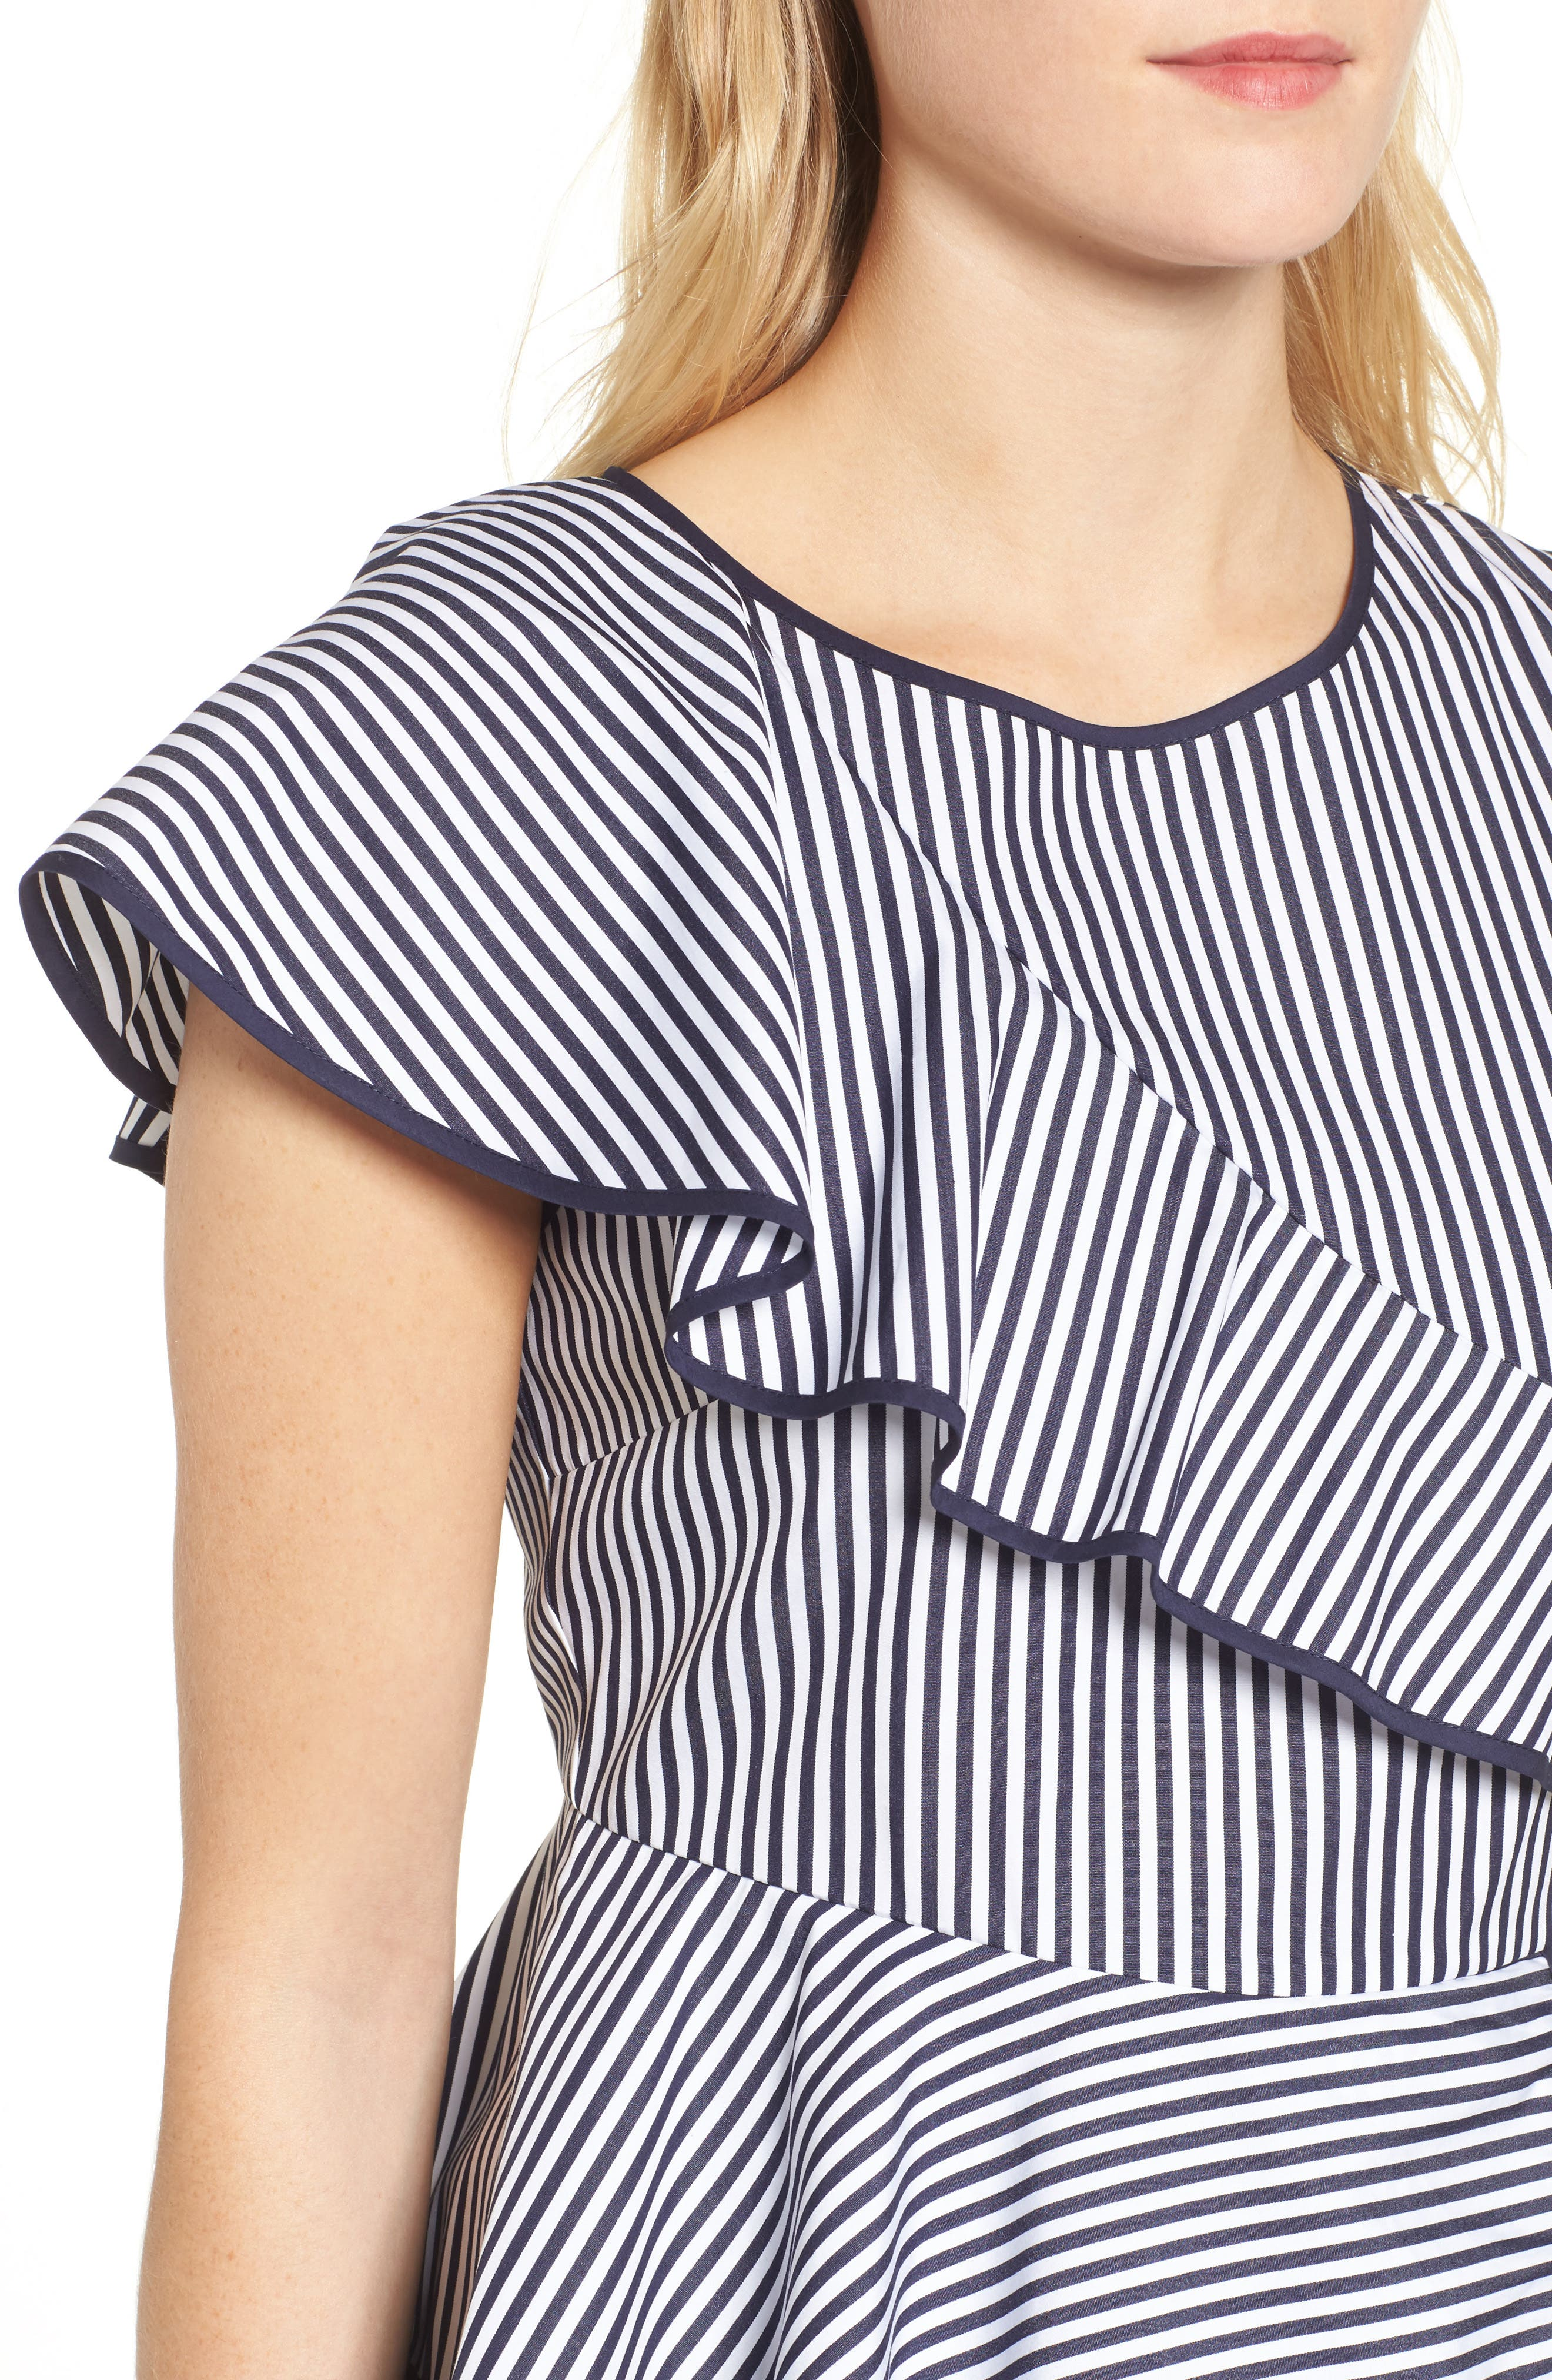 Alternate Image 4  - Parker Carly Ruffle Top